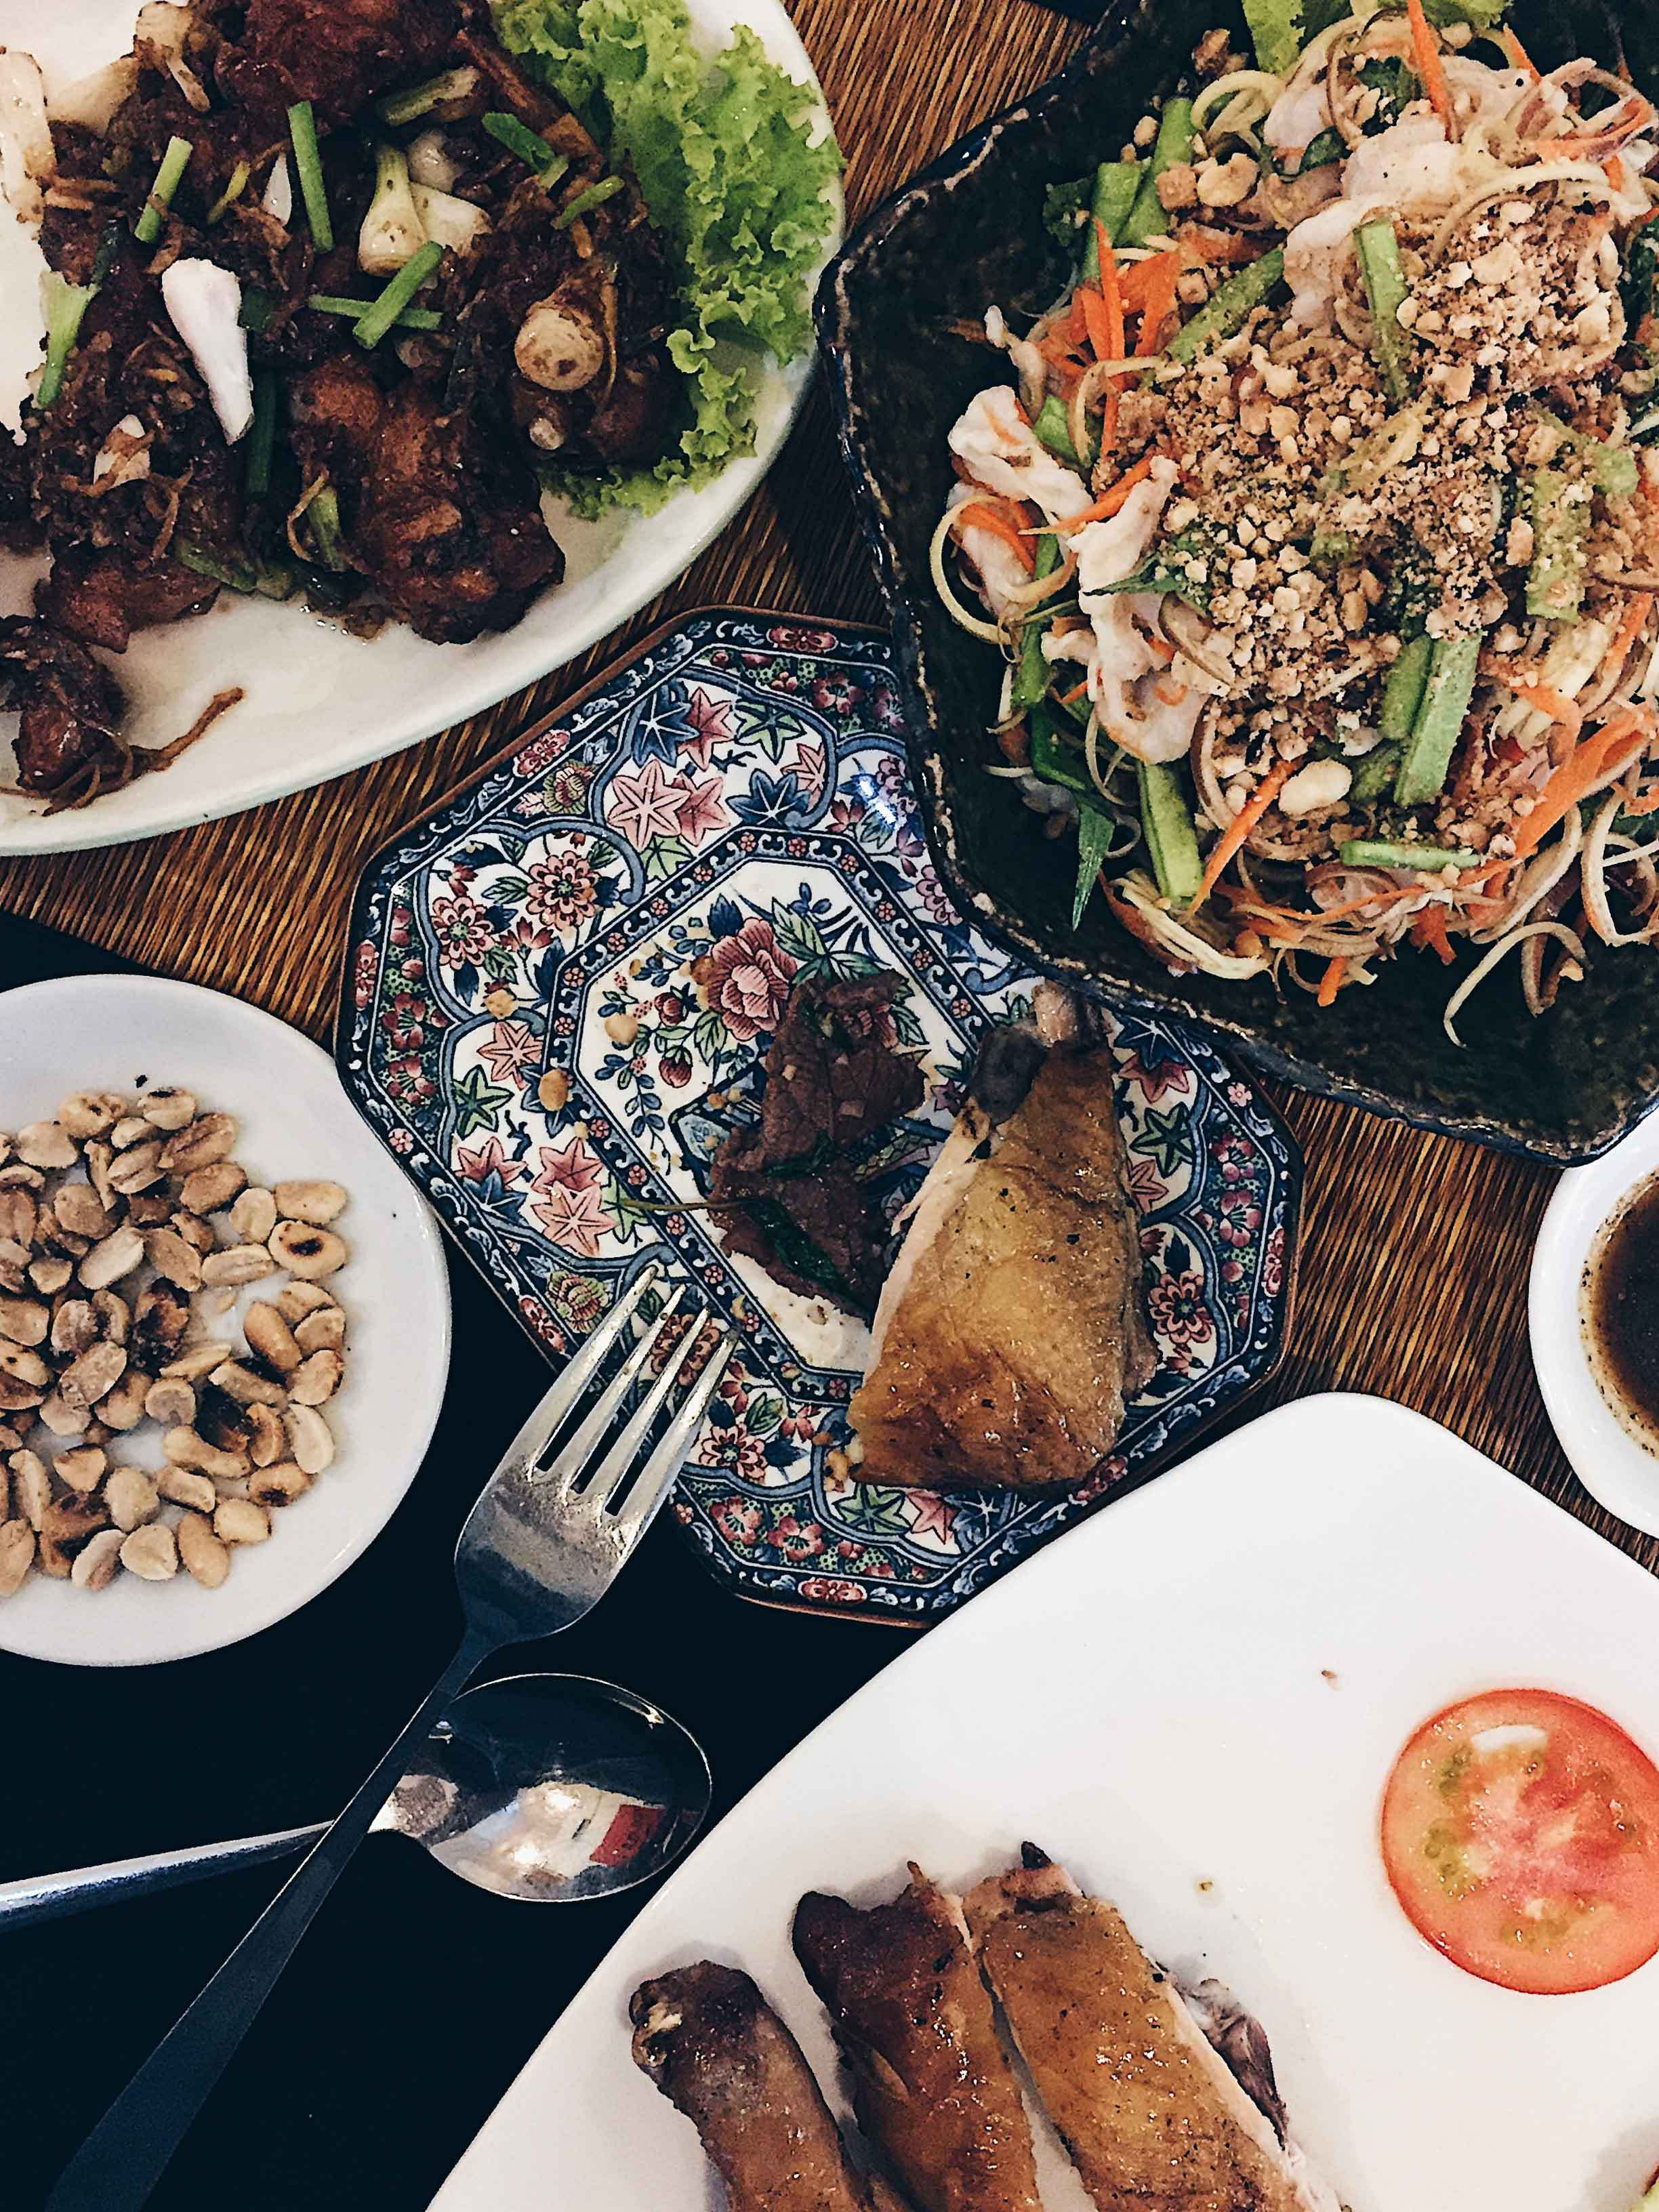 Mok Mony Restaurant : the affordable, authentic local eatery at BKK, favorite of locals and foreigners alike